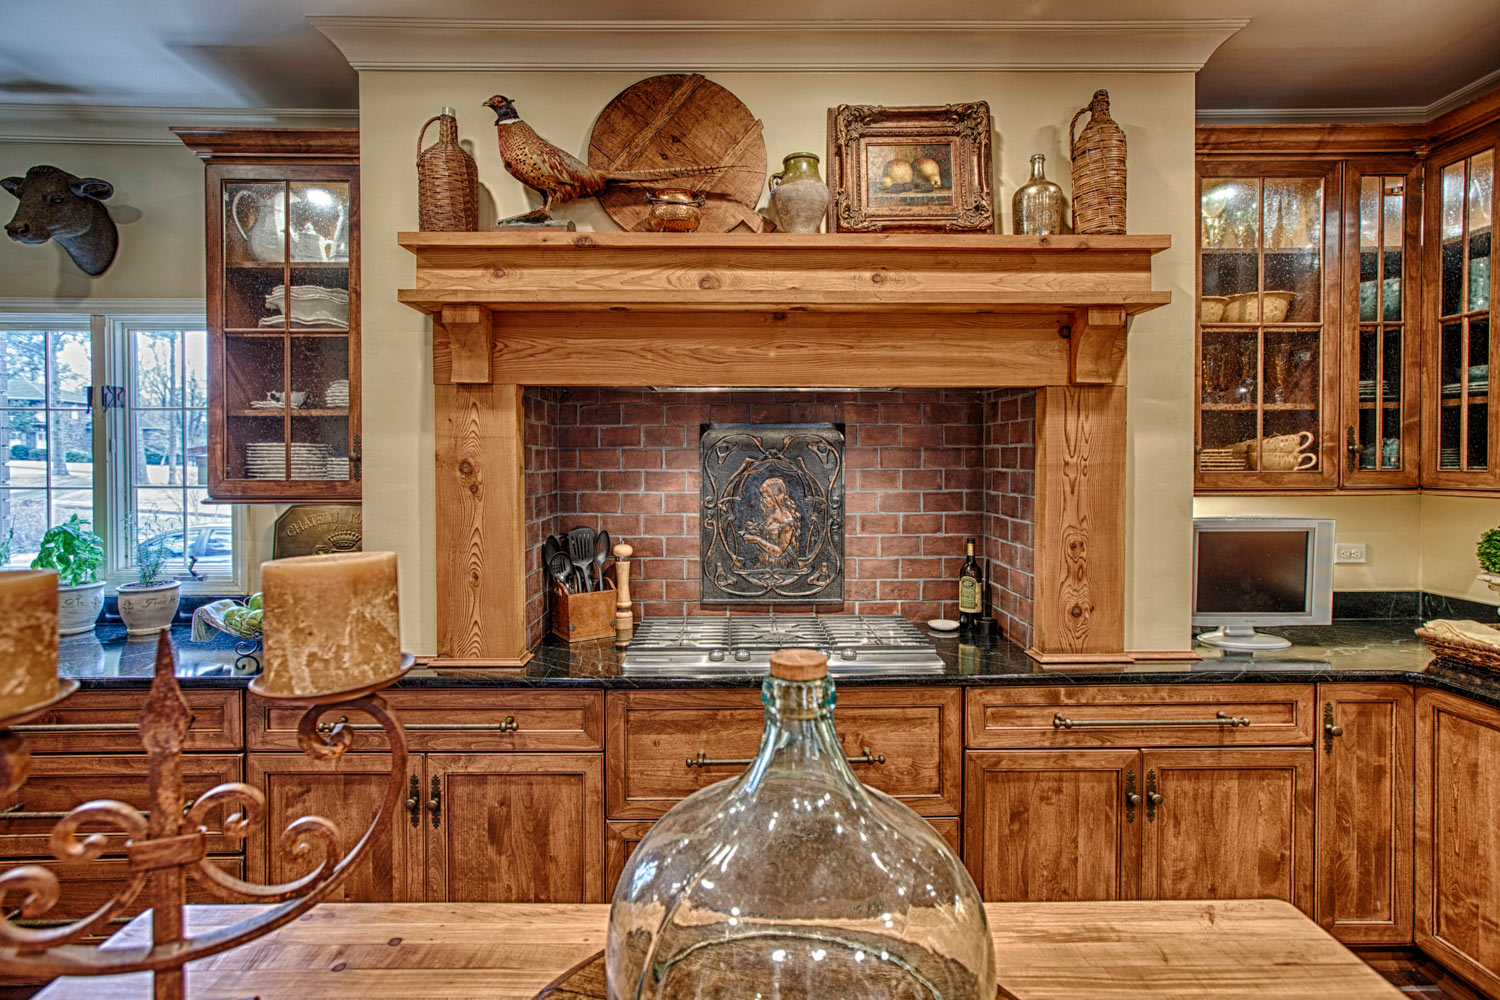 This rustic French inspired kitchen design is a home located near the Indian Hills Country club.